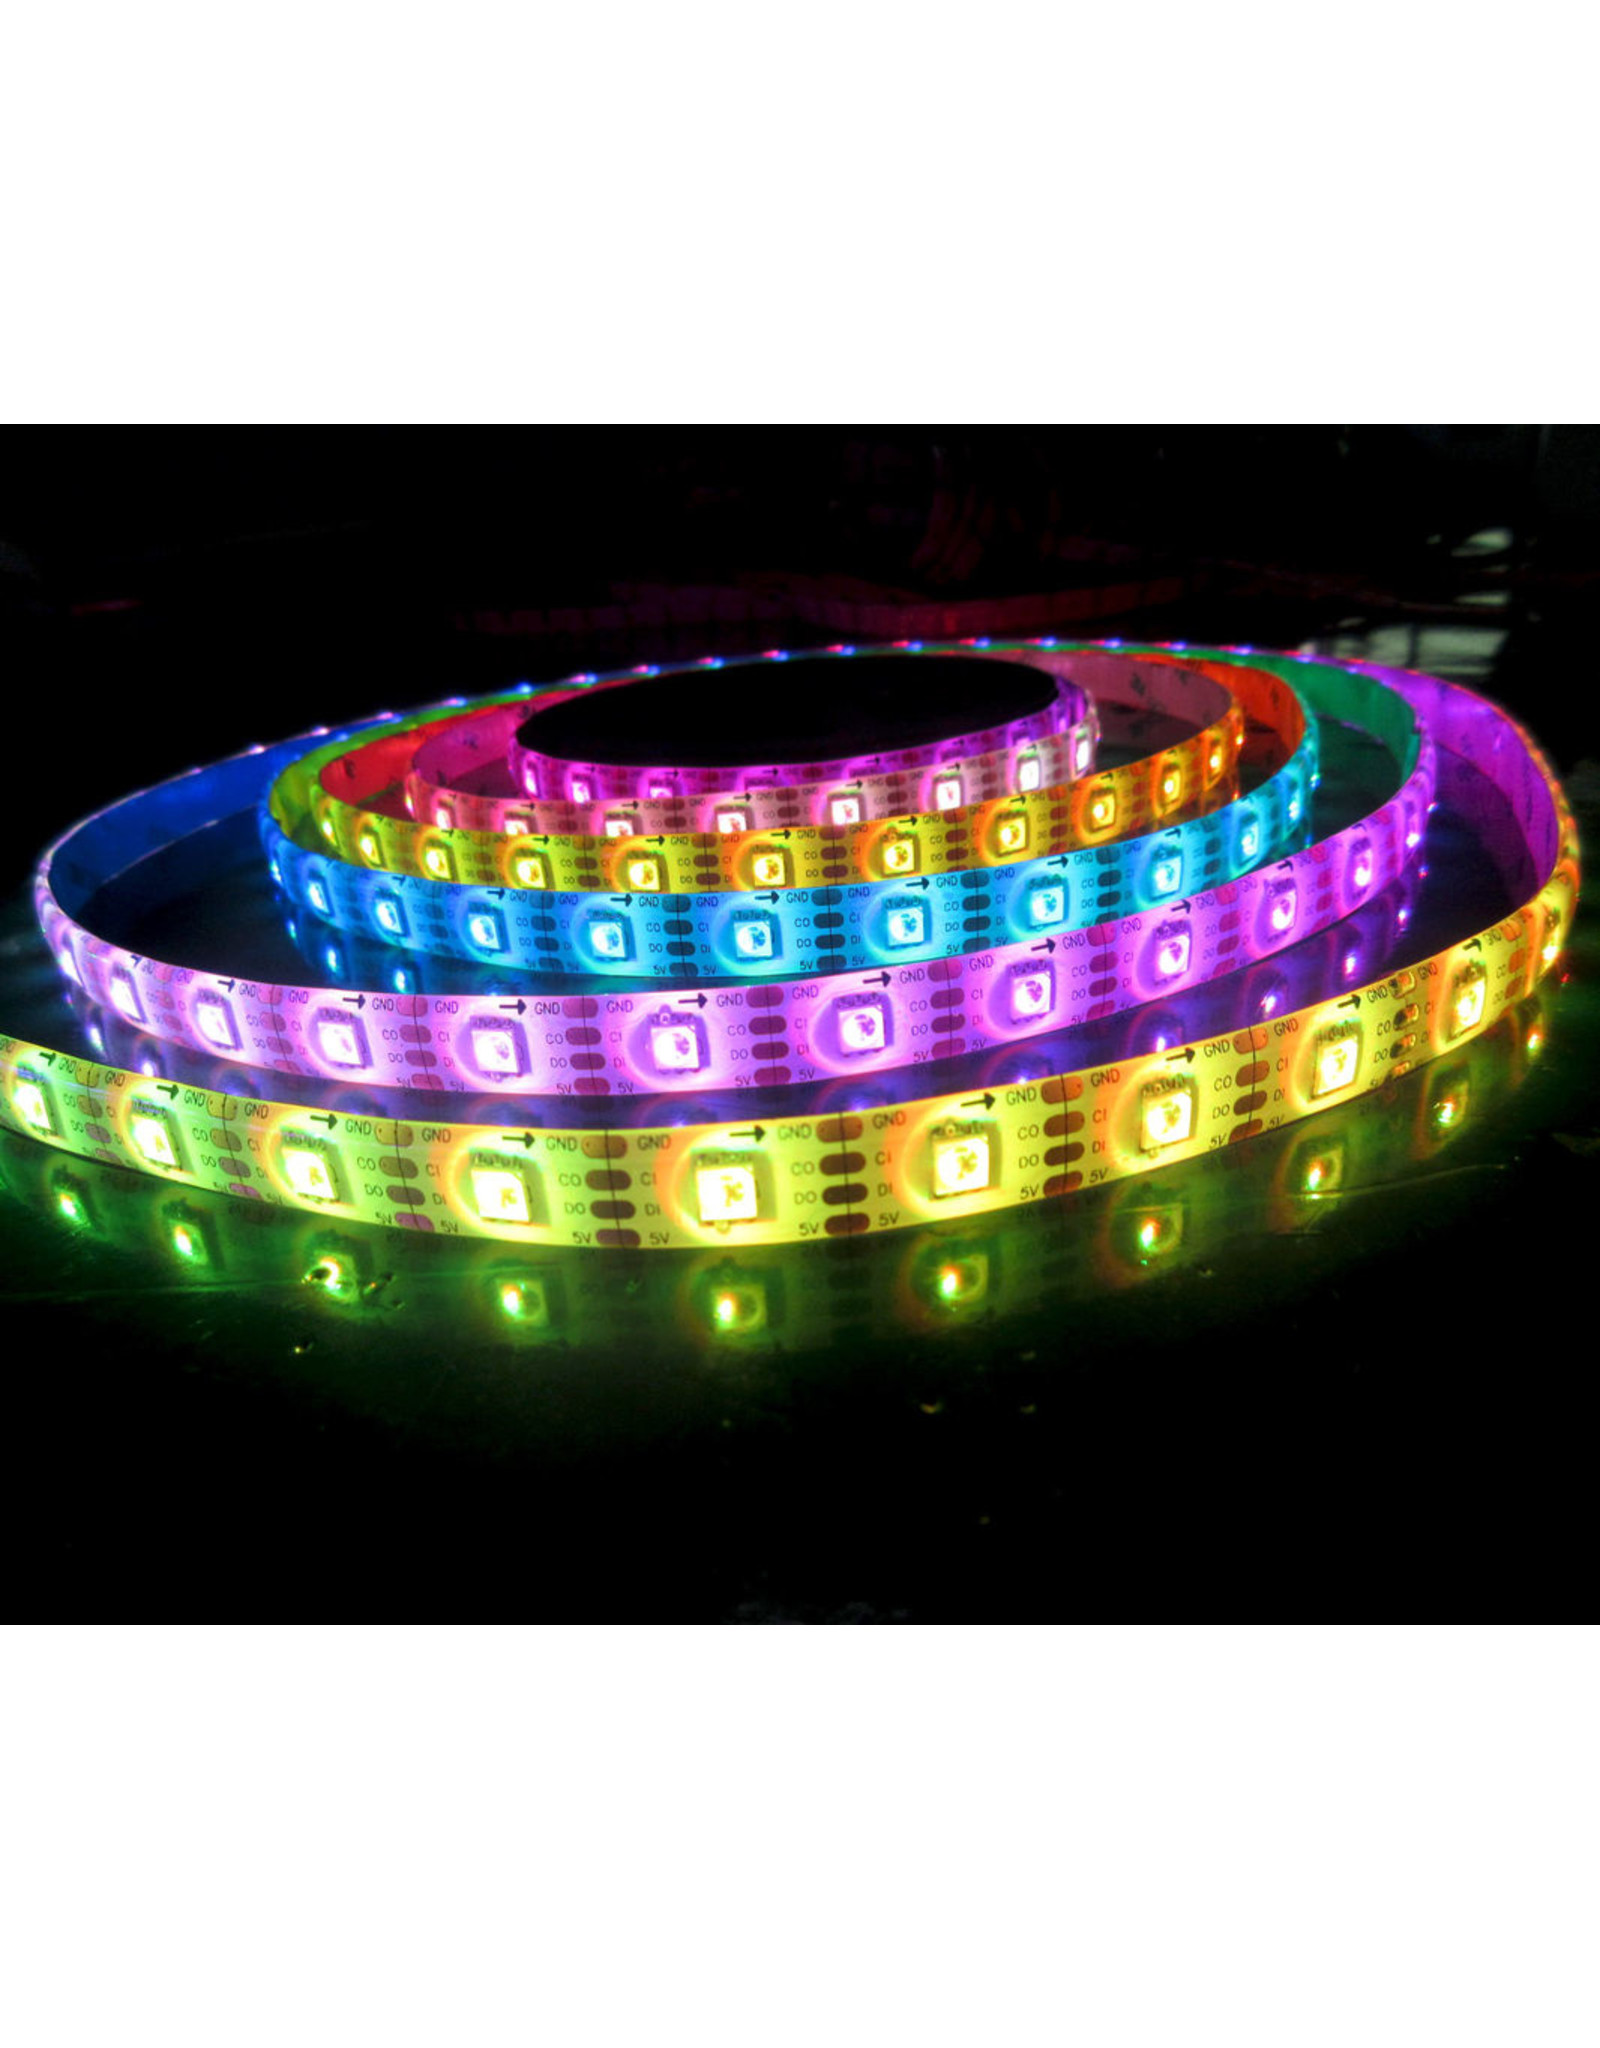 Lights Digital RGB Ledstrip - 100leds/m - IP20 - 5m - 5V